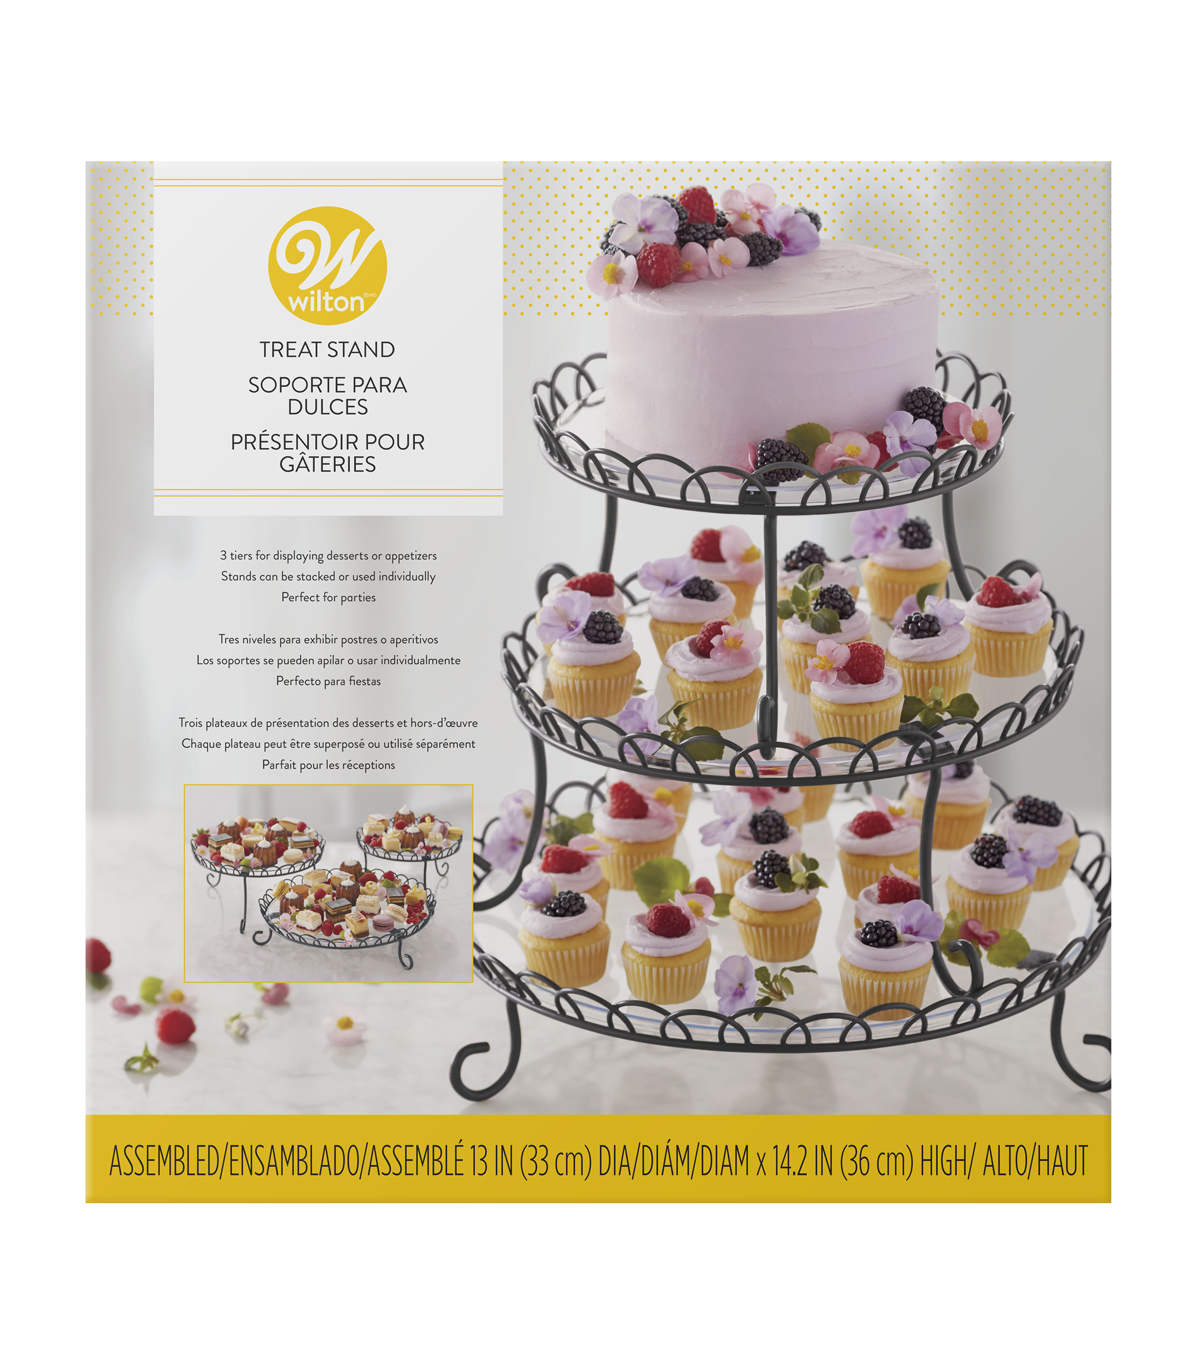 Wilton 13''x14.2'' 3 Tier Customizable Iron Treat Stand                      Wilton 13''x14.2'' 3 Tier Customizable Iron Treat Stand by Wilton